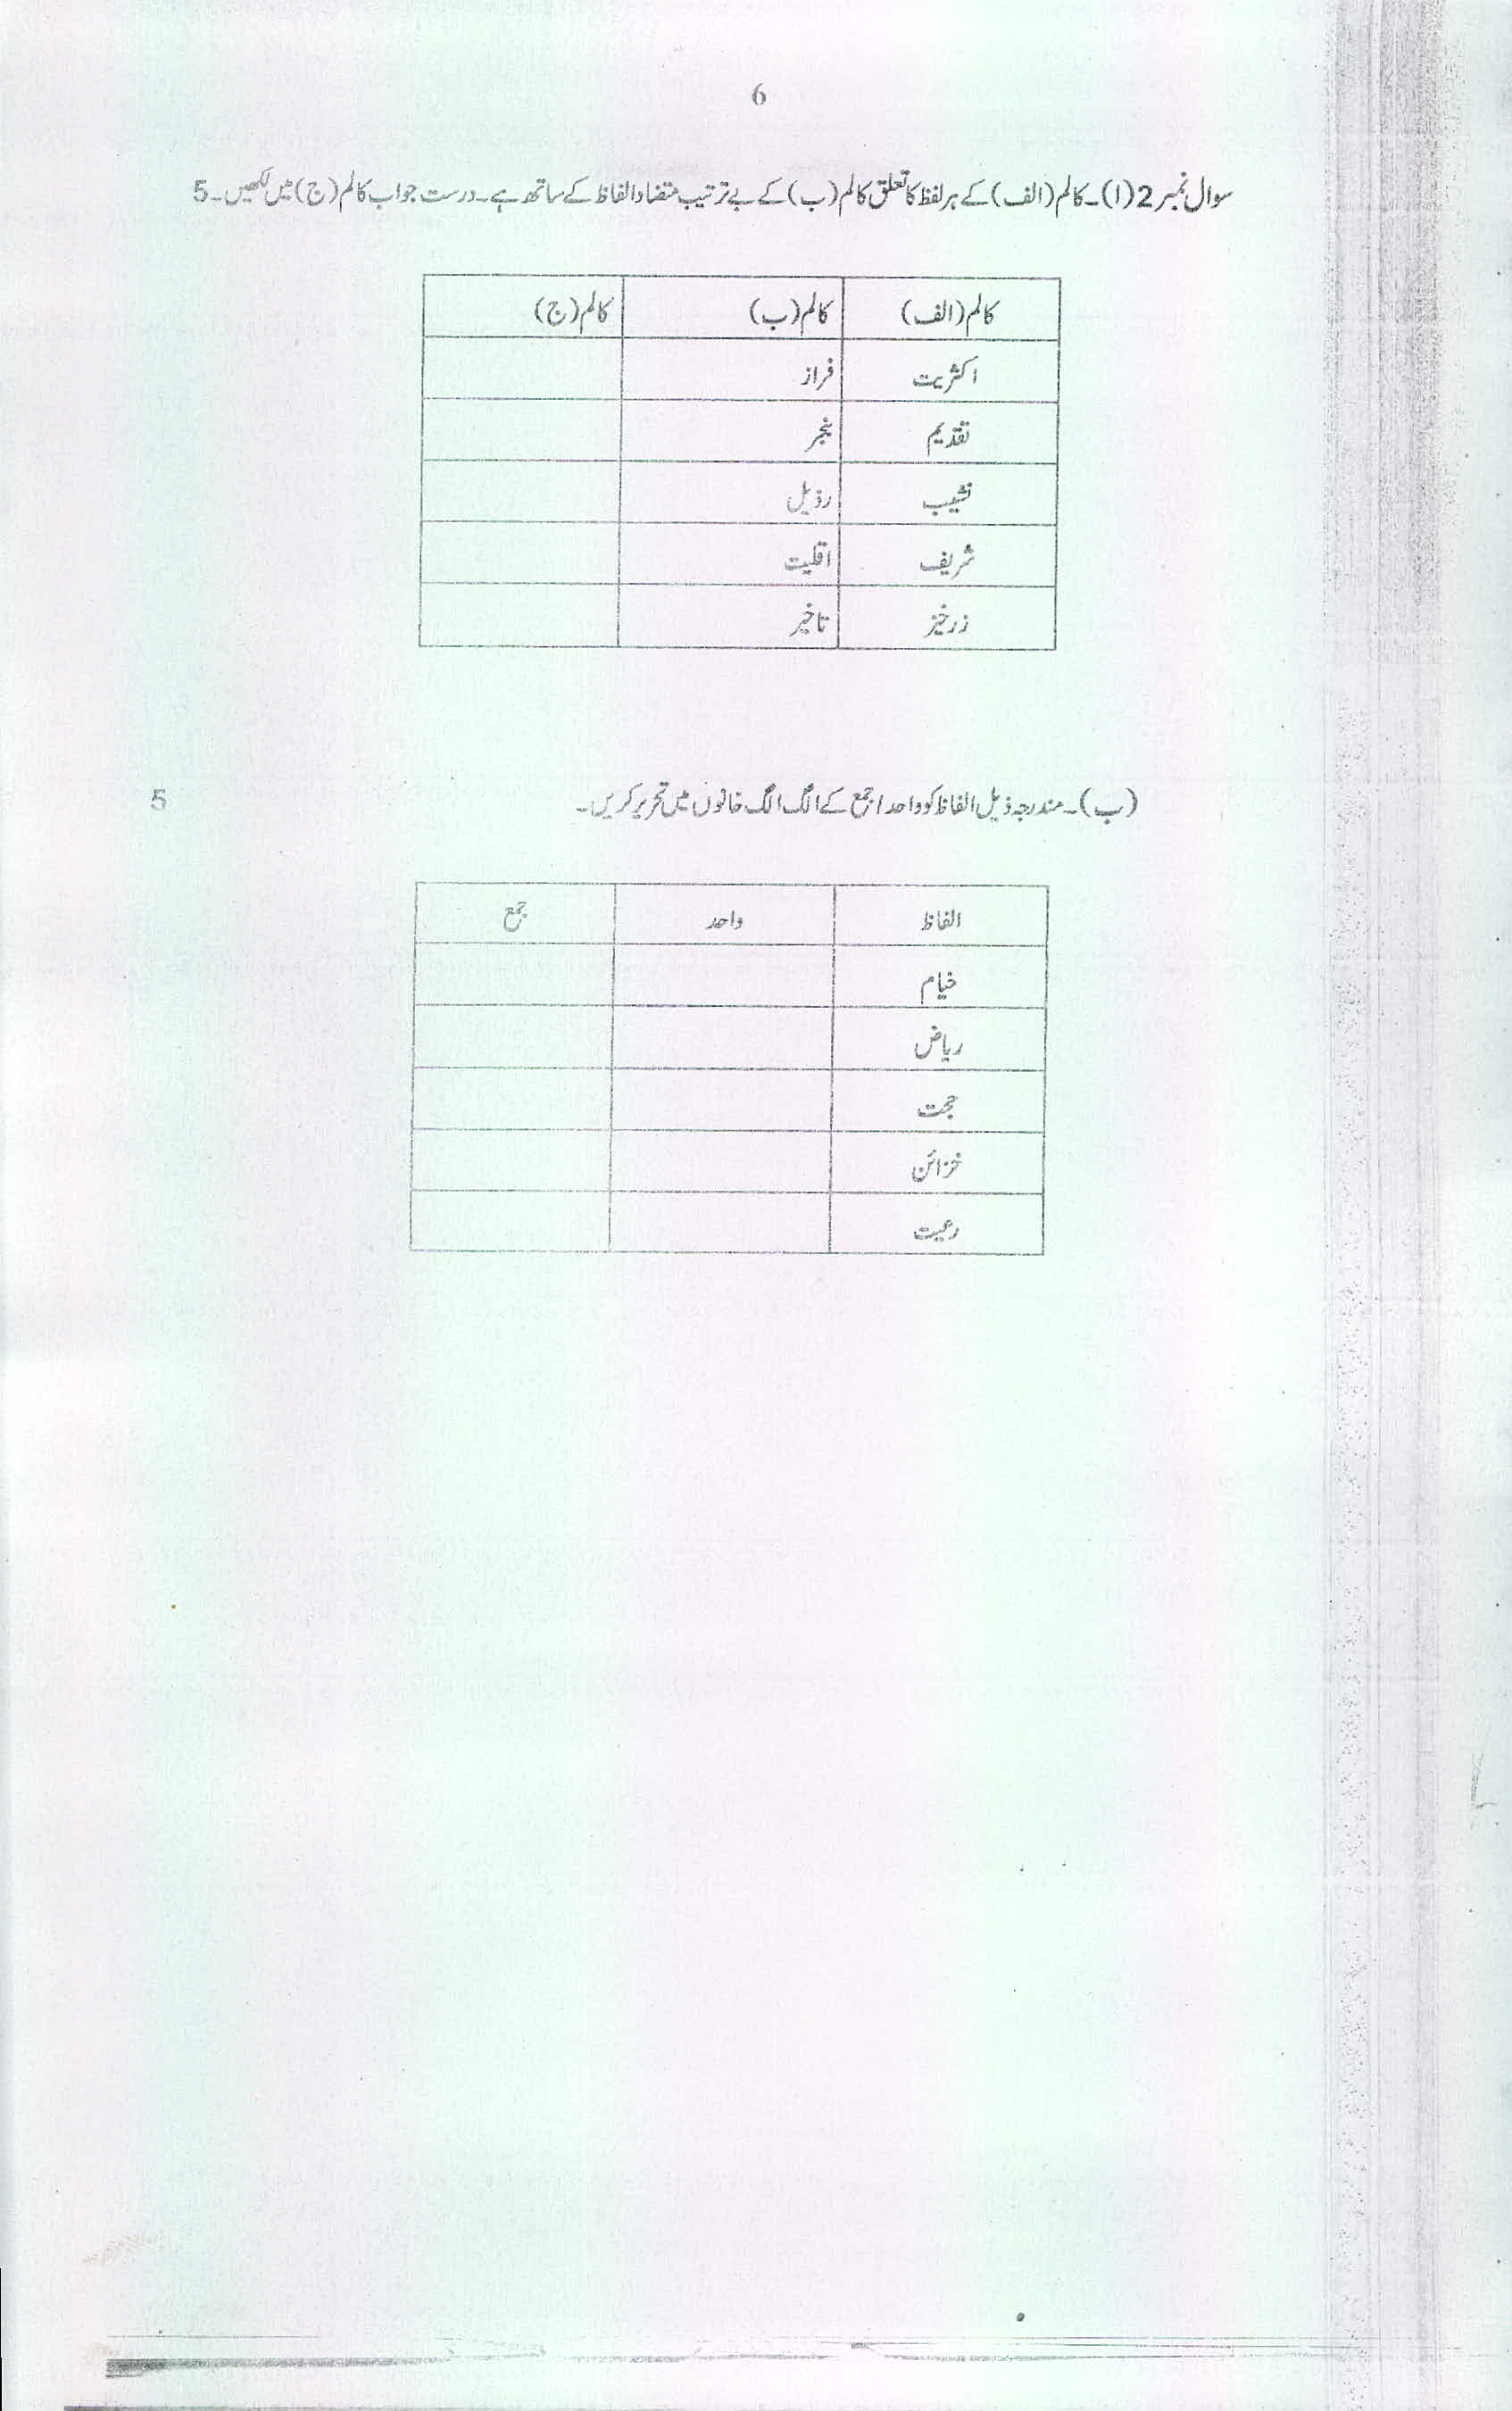 9th class Model Paper BISE Multan